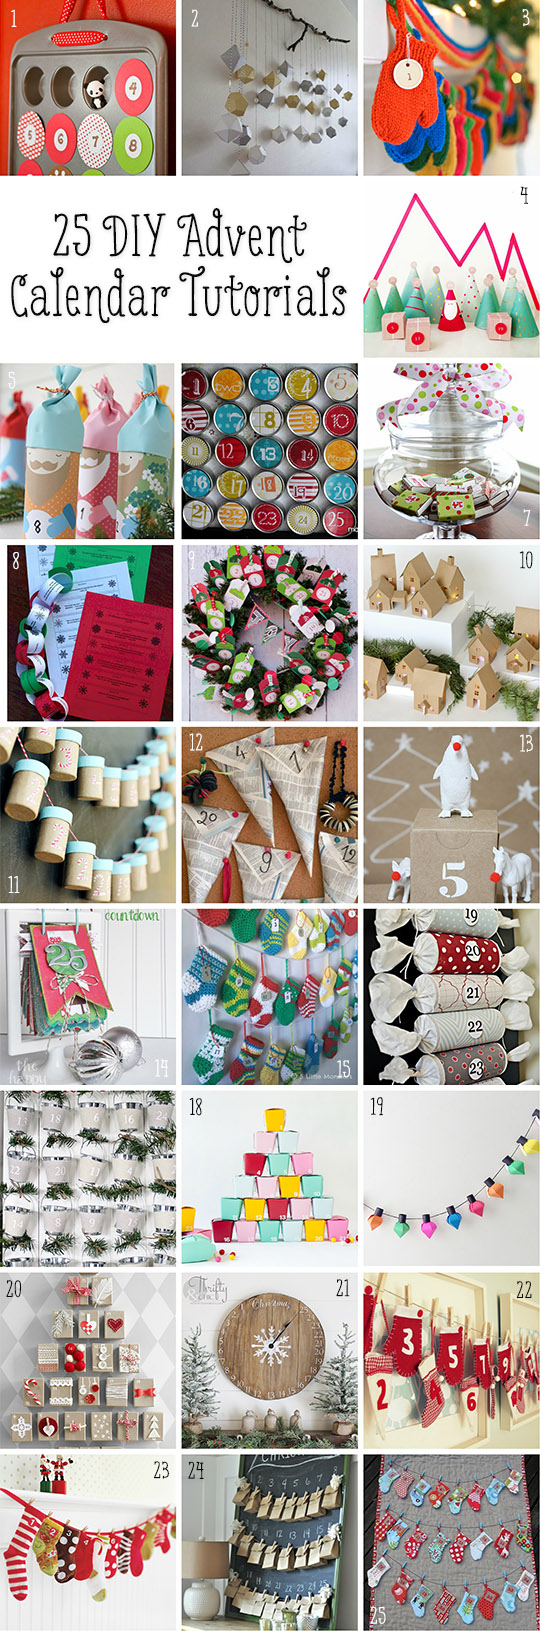 25 DIY Advent Calendar Tutorials